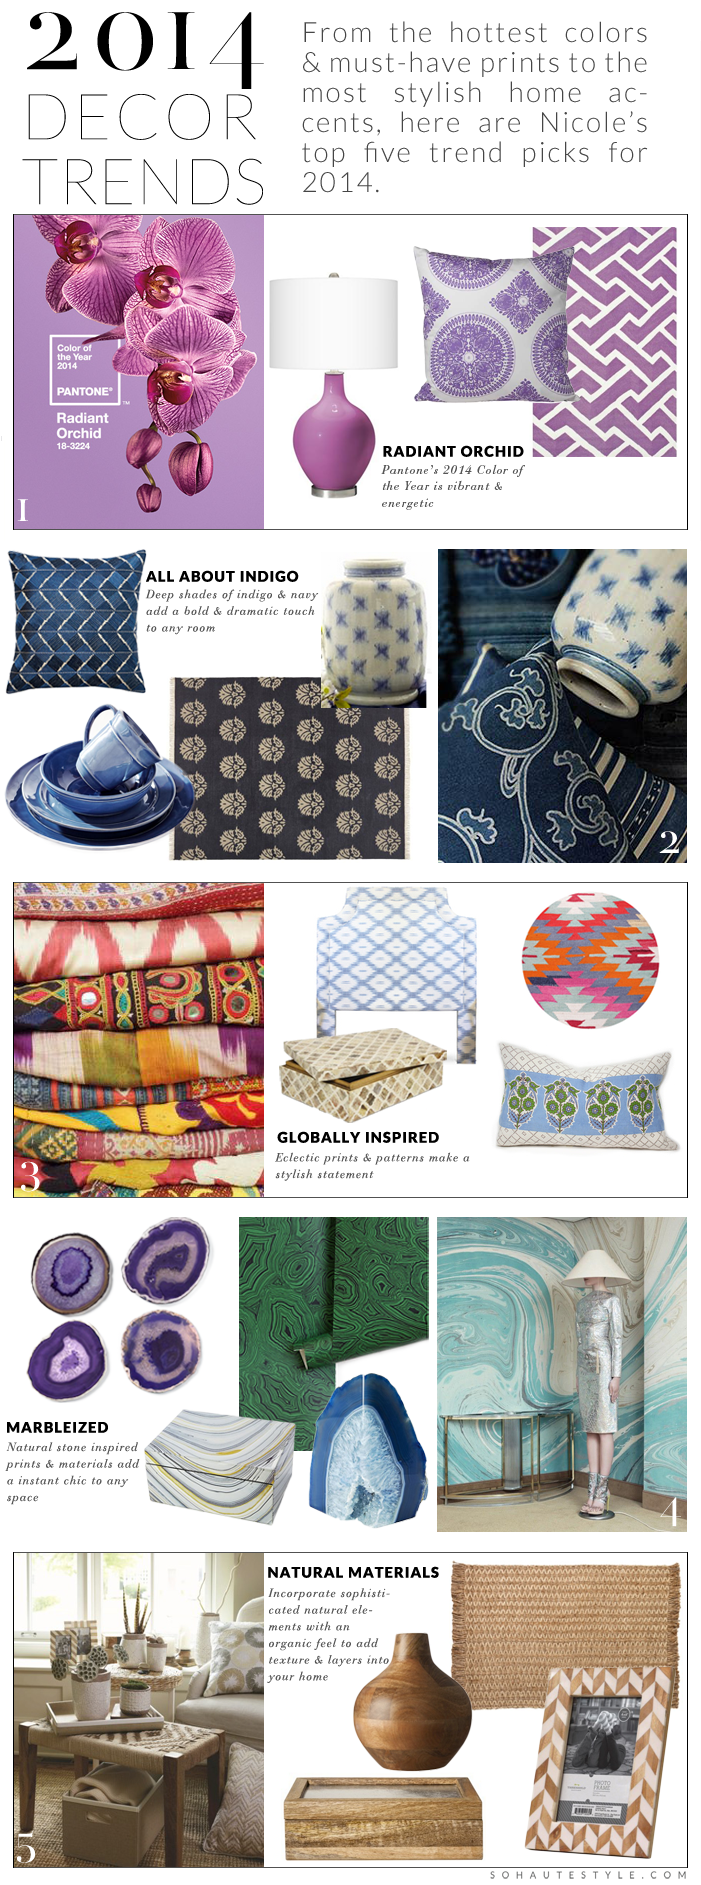 Here Are Five 2014 Decor Trends That Combine Color Texture And Pattern To Inspire Your Own Design Dreams